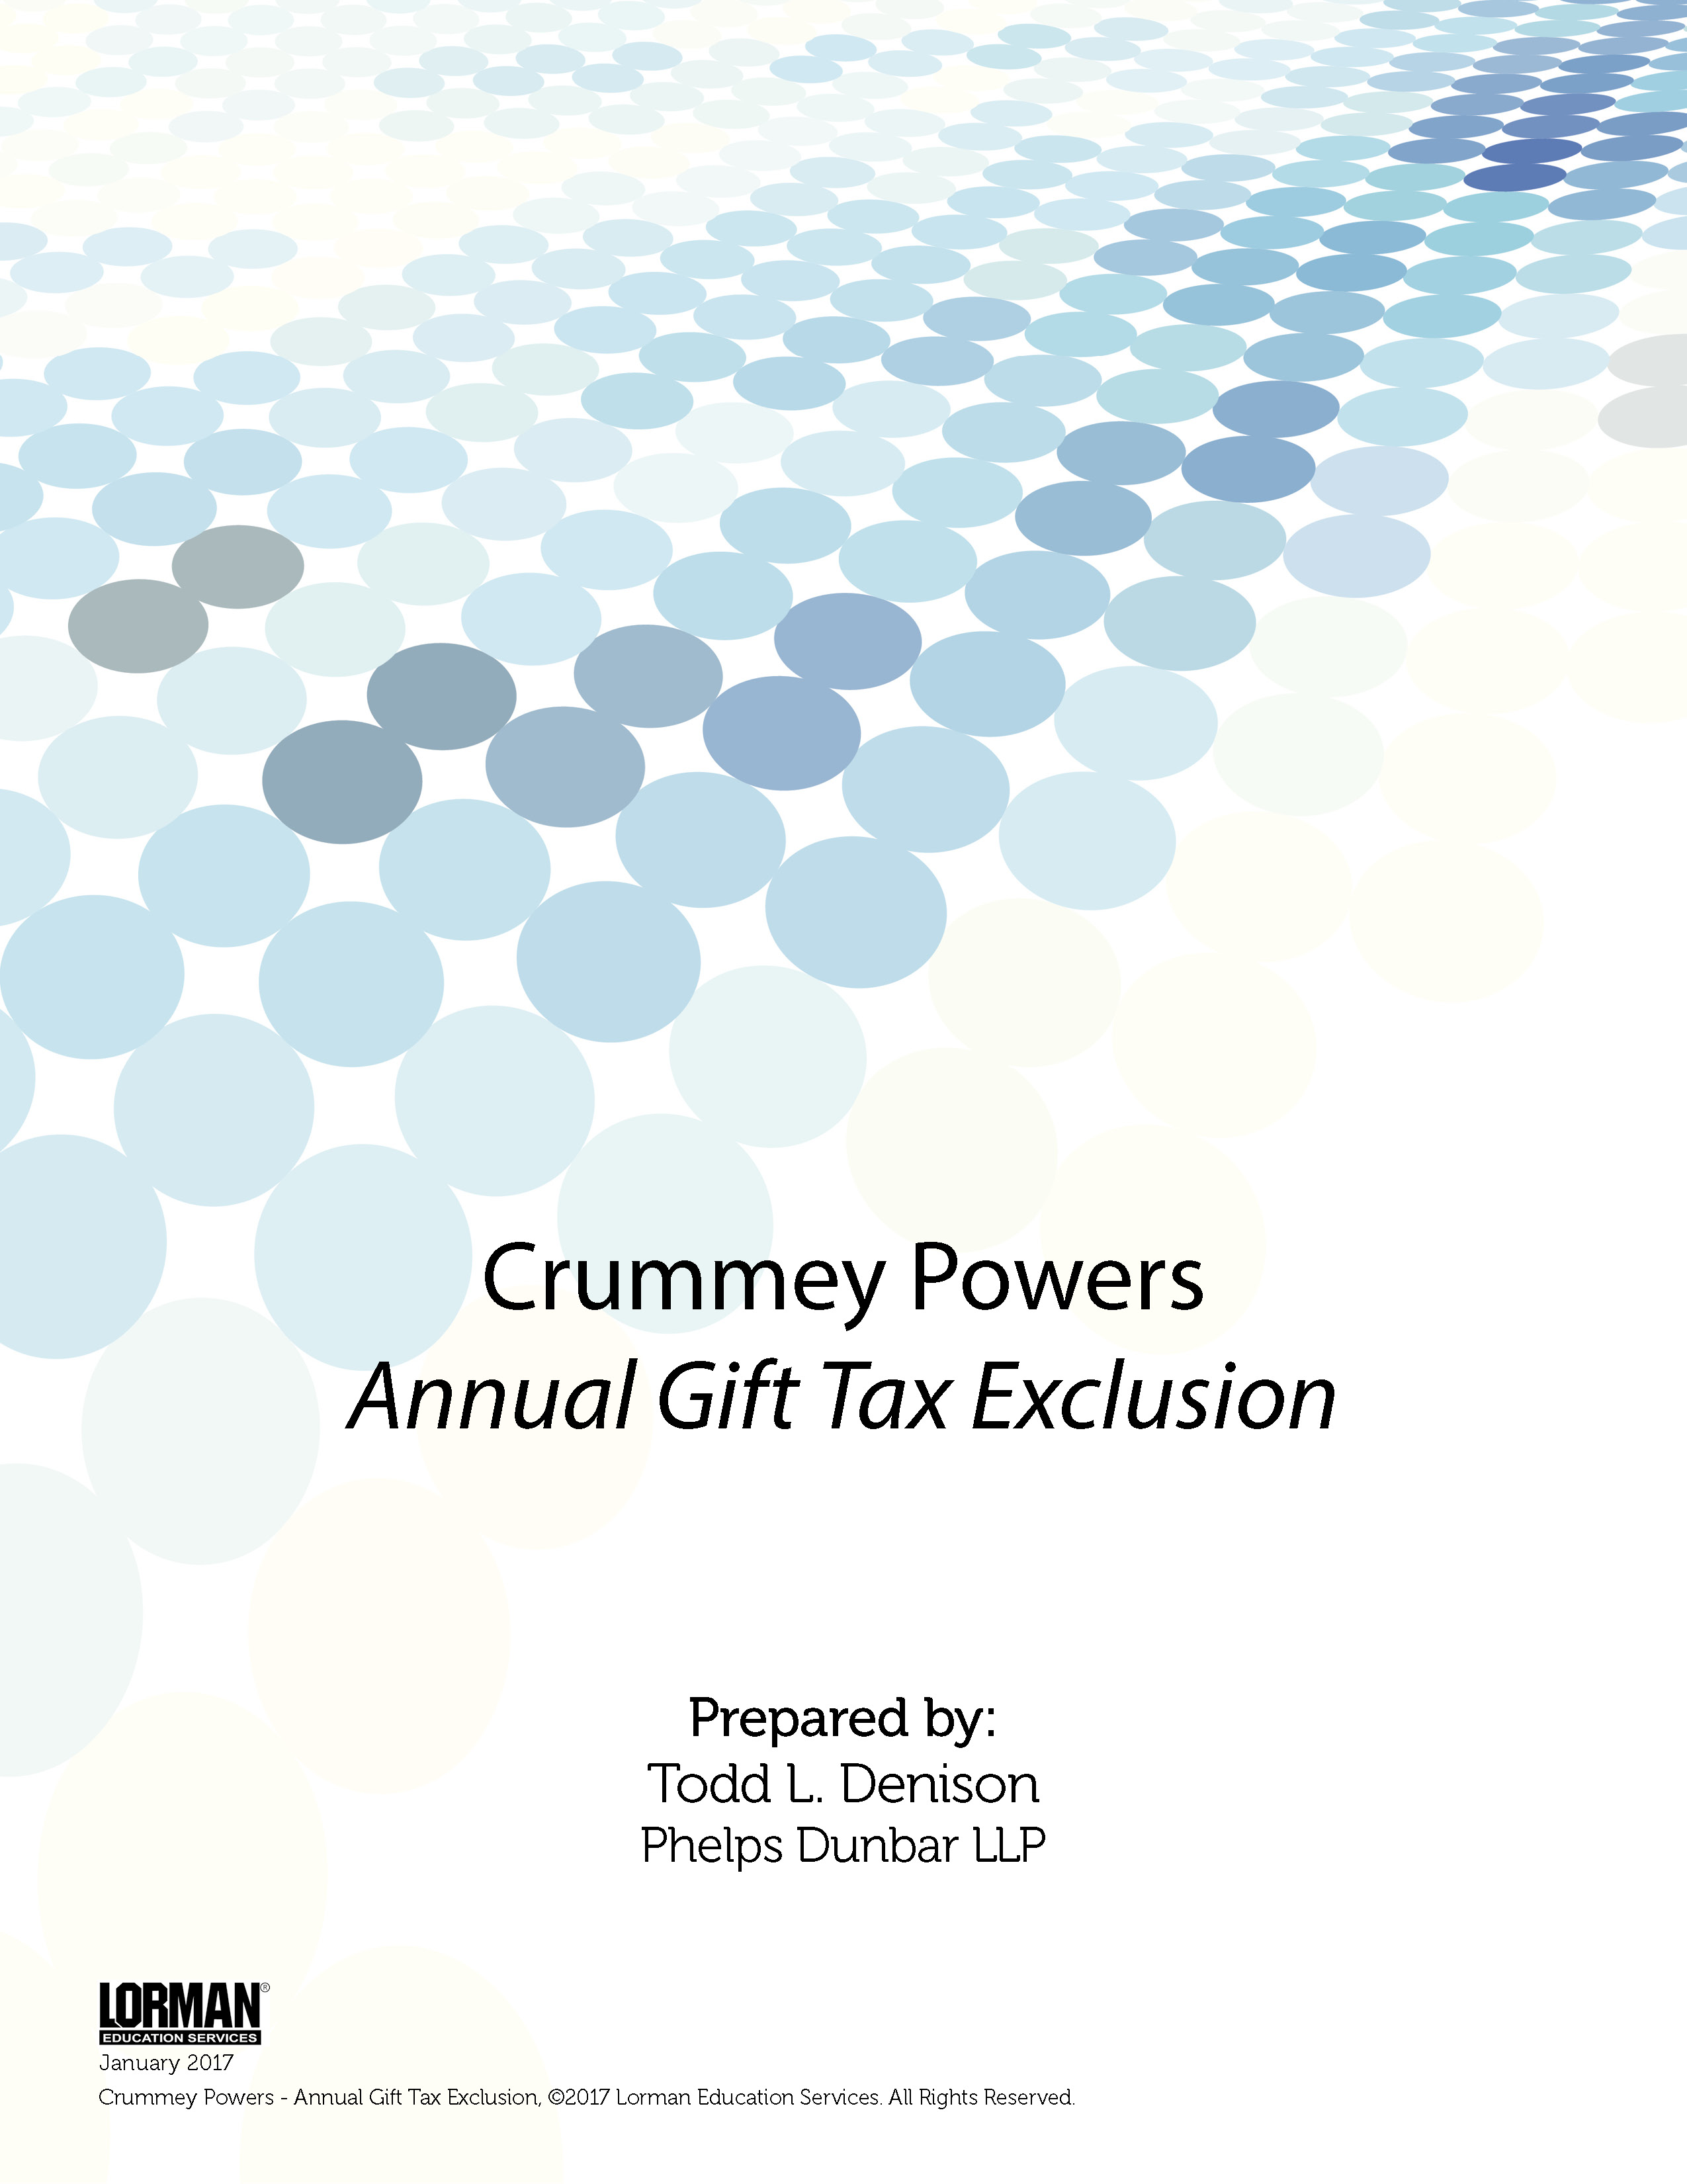 Crummey Powers - Annual Gift Tax Exclusion